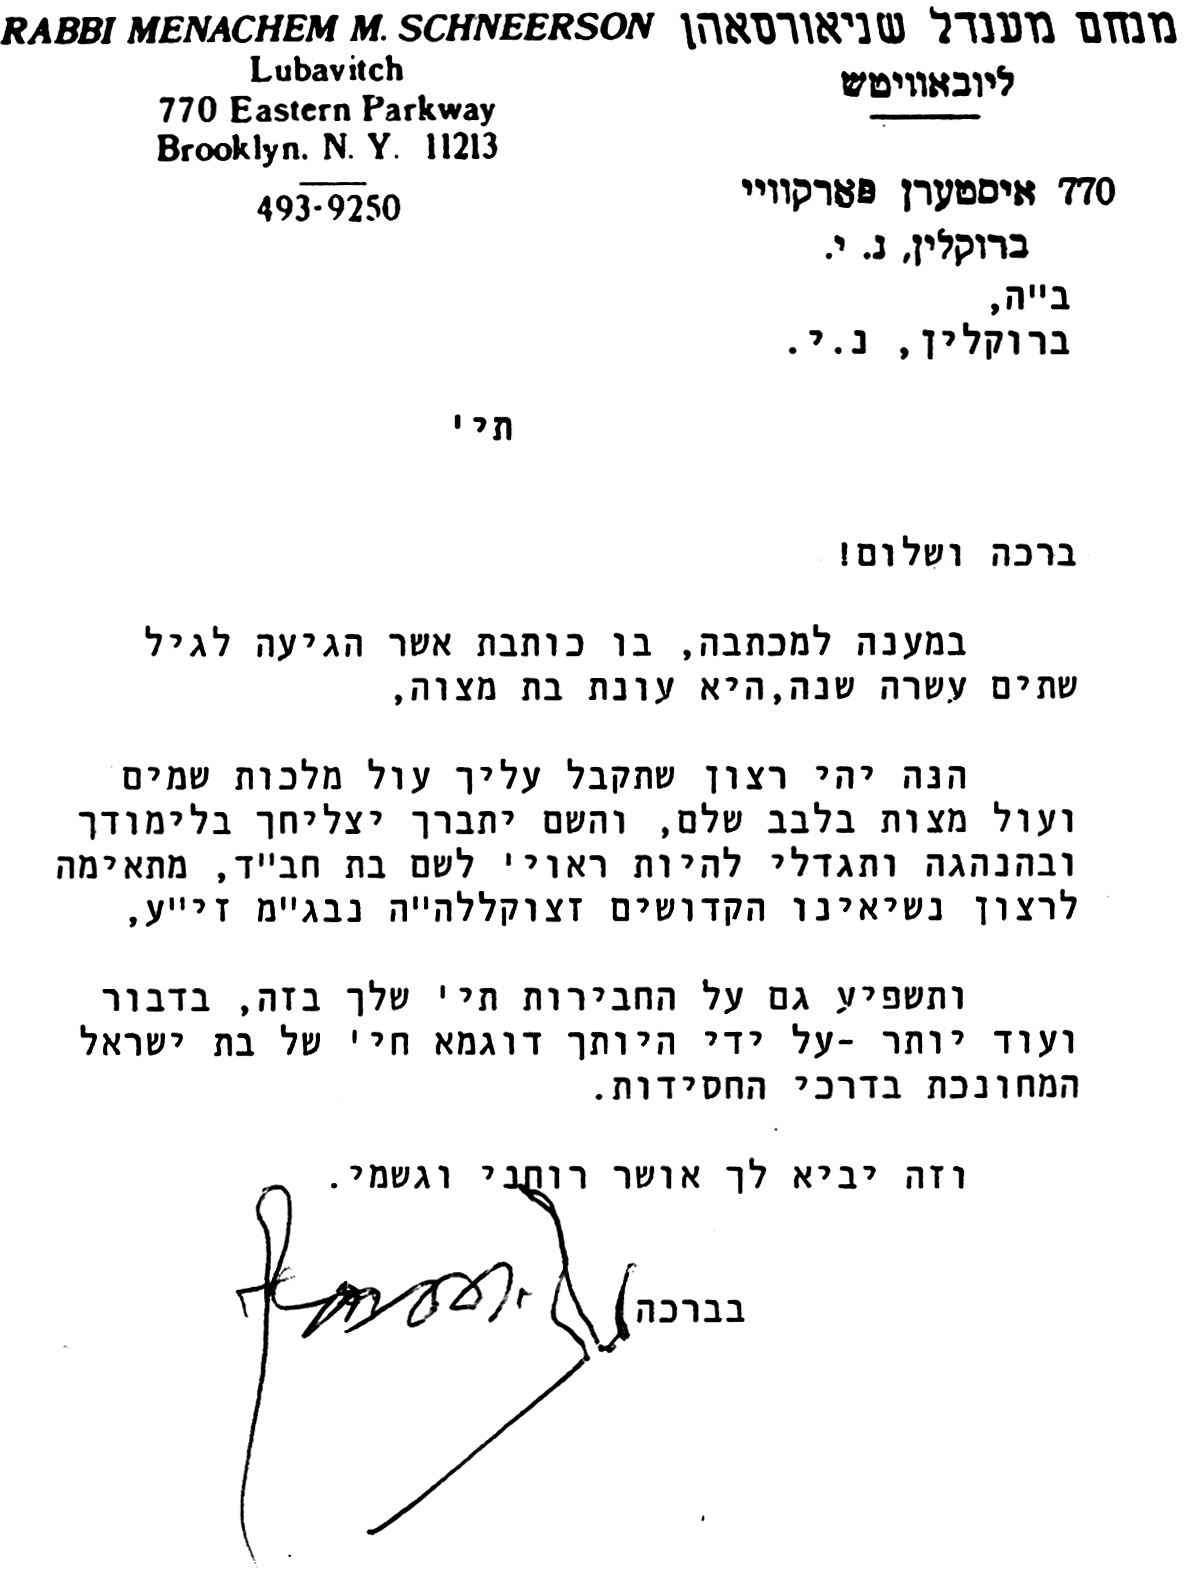 Empire Press Items Handwritten Facsimile From The Rebbe